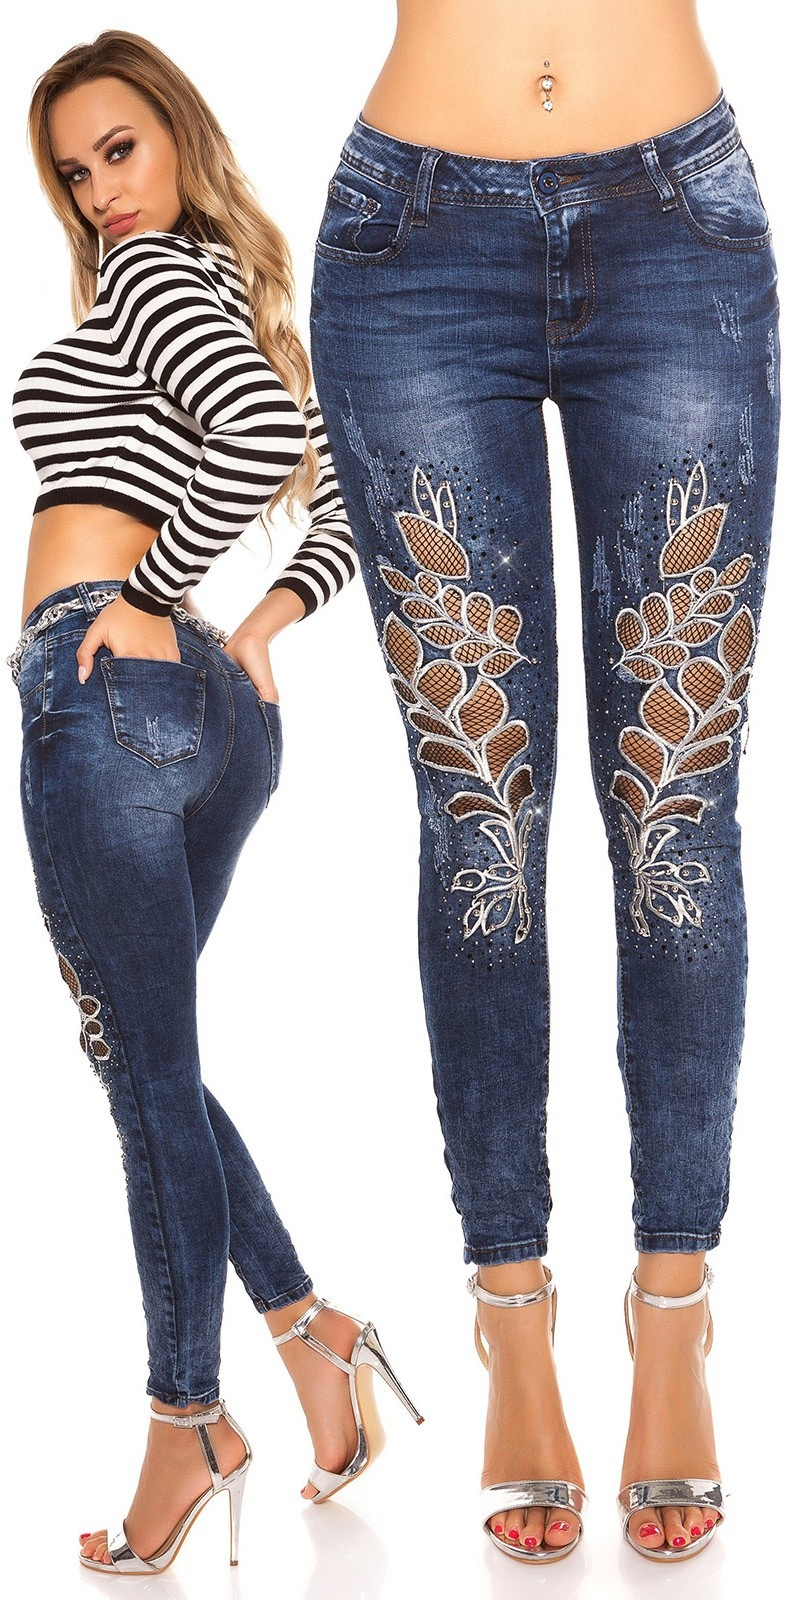 Sexy Skinny Jeans with Net, Embroidery & Stones Jeansblue